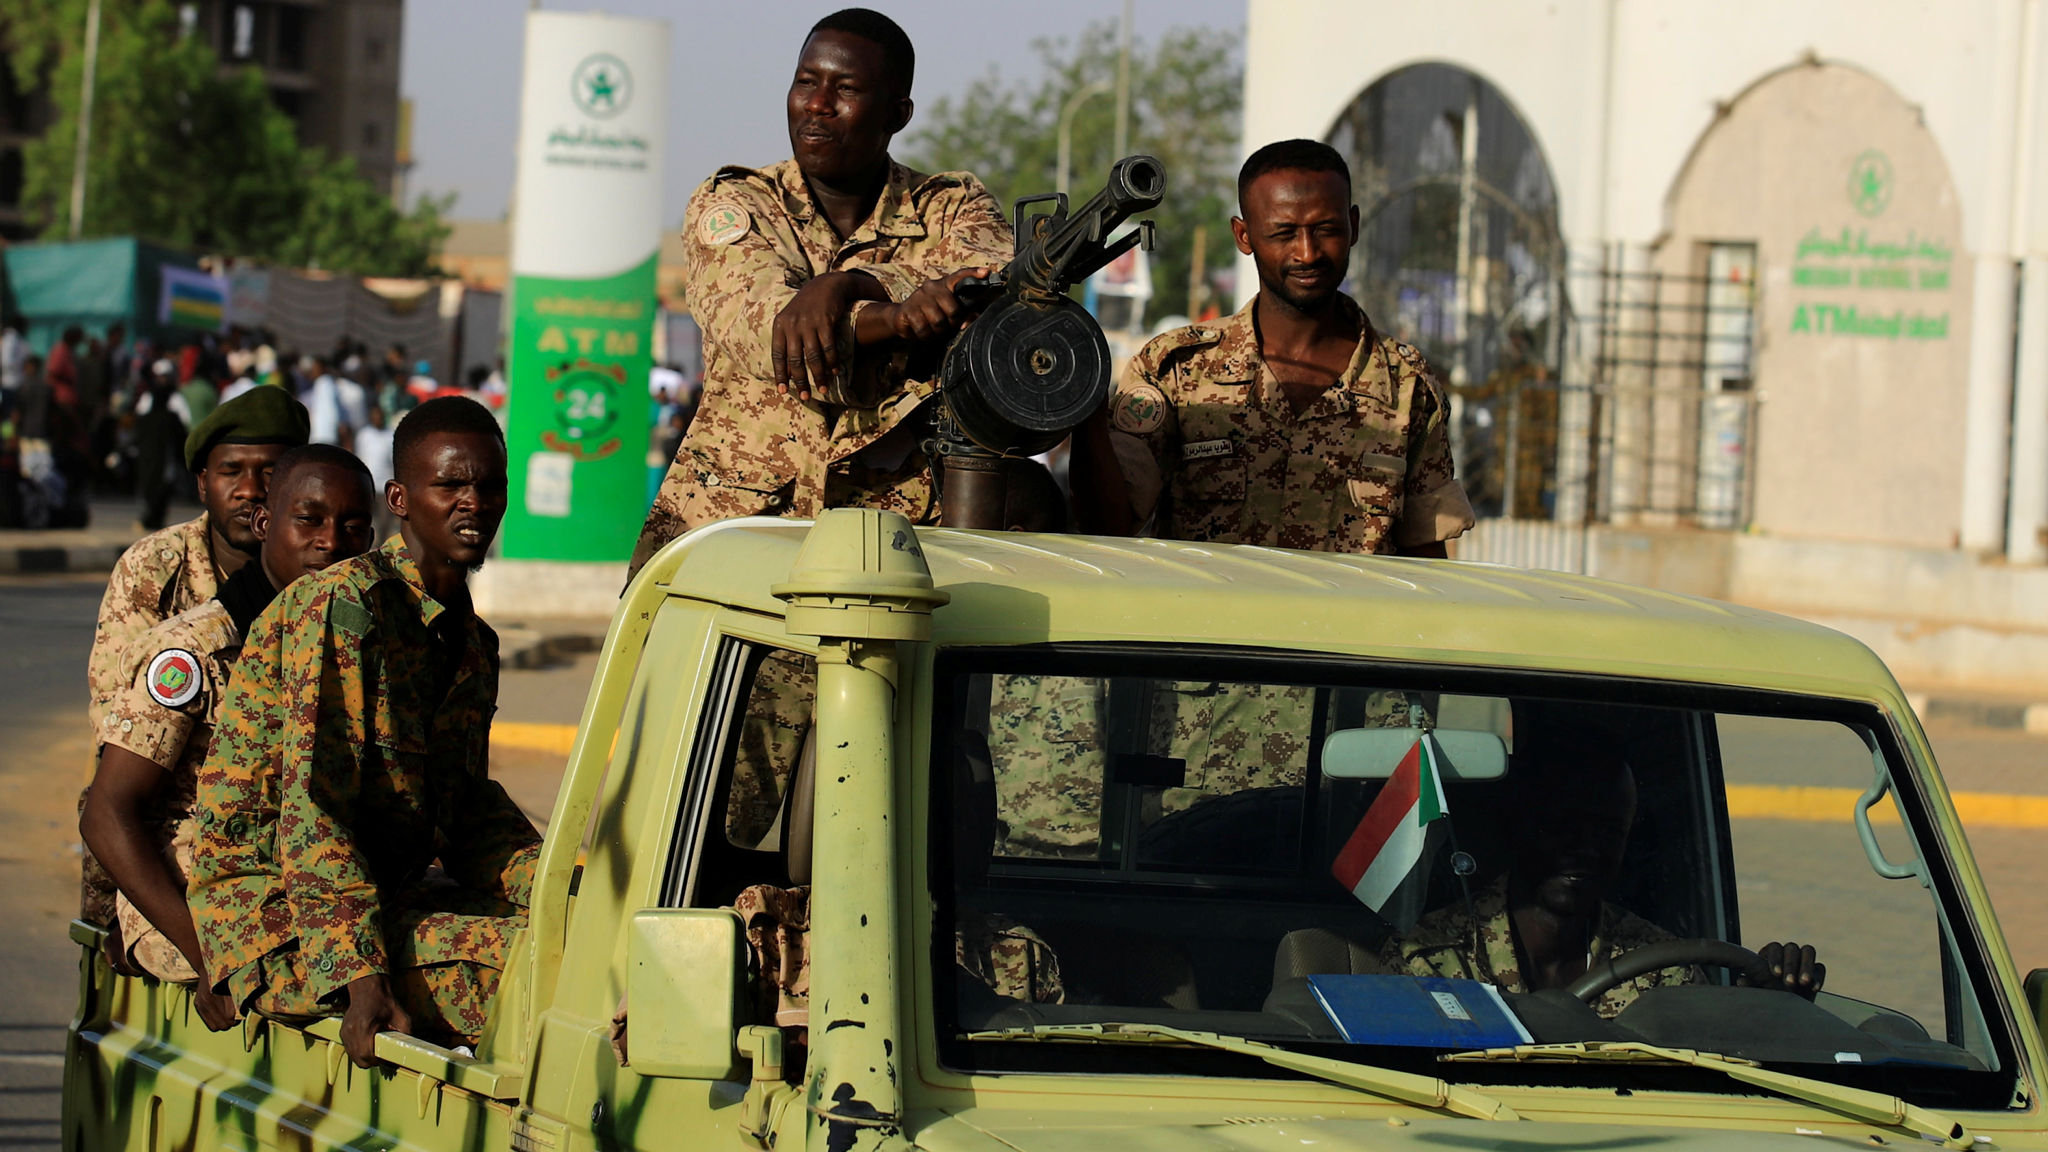 Sudan's air force chief insists army prepared to hand over